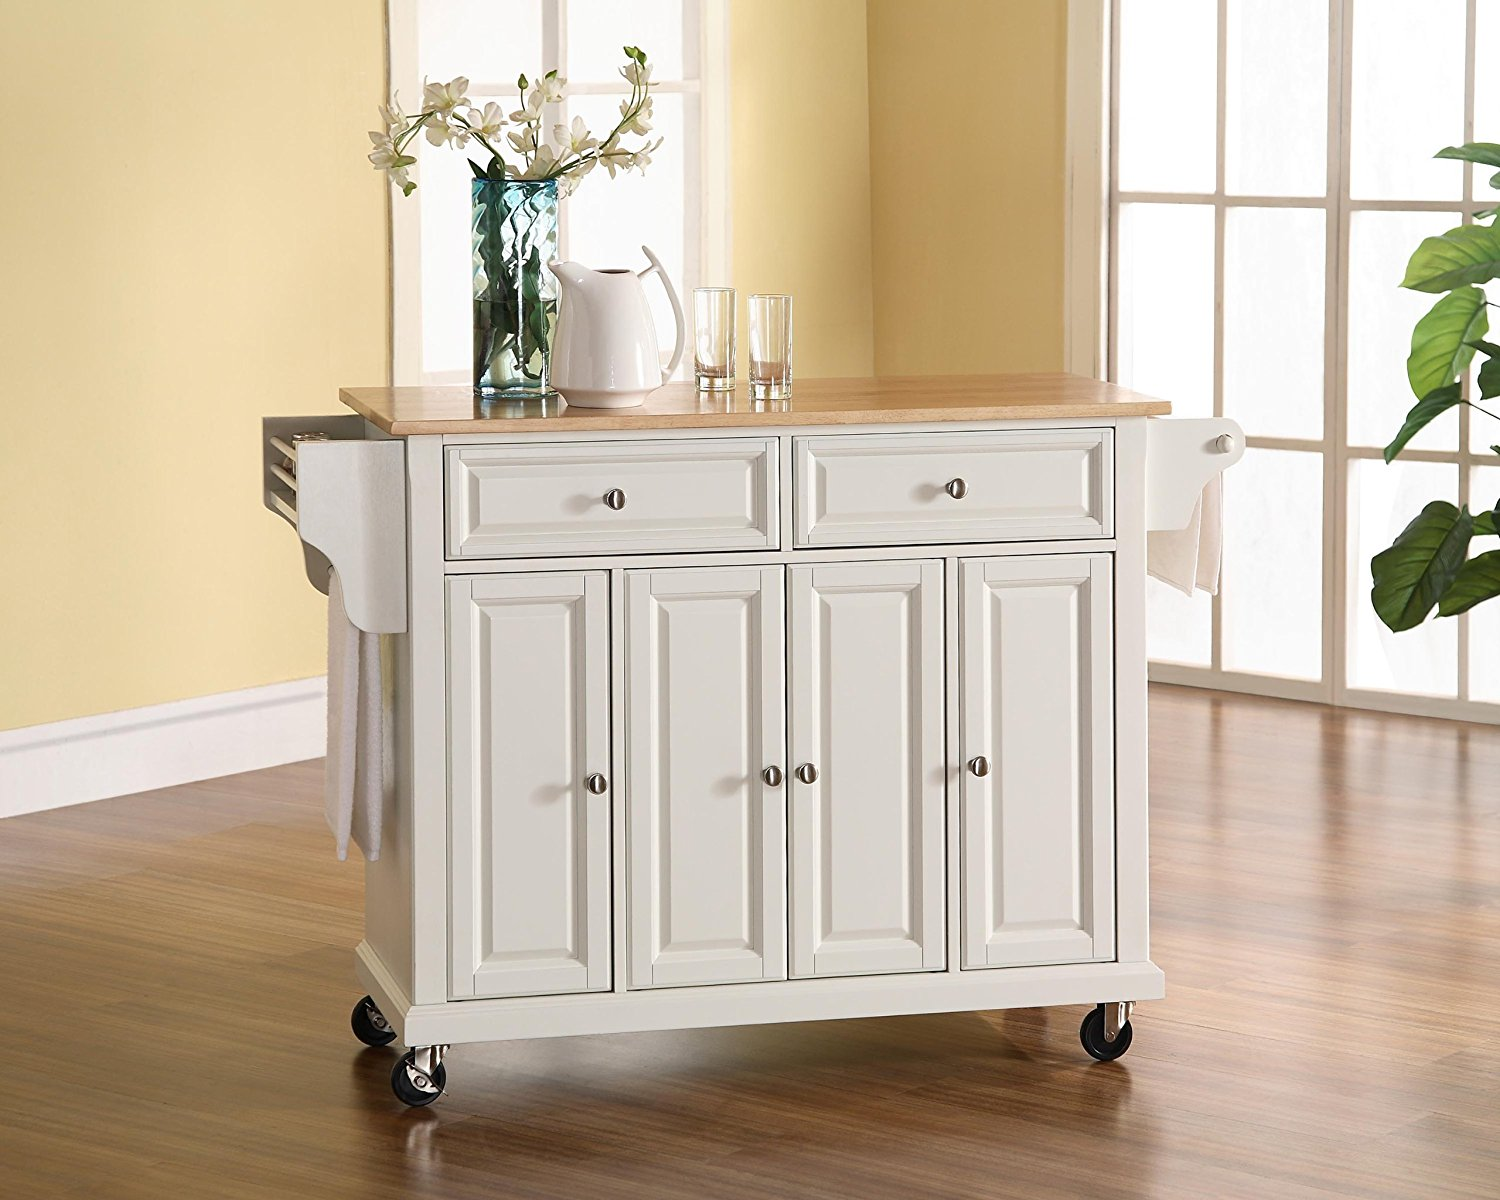 Details About Crosley Furniture Rolling Kitchen Island With Natural Wood Top In White New